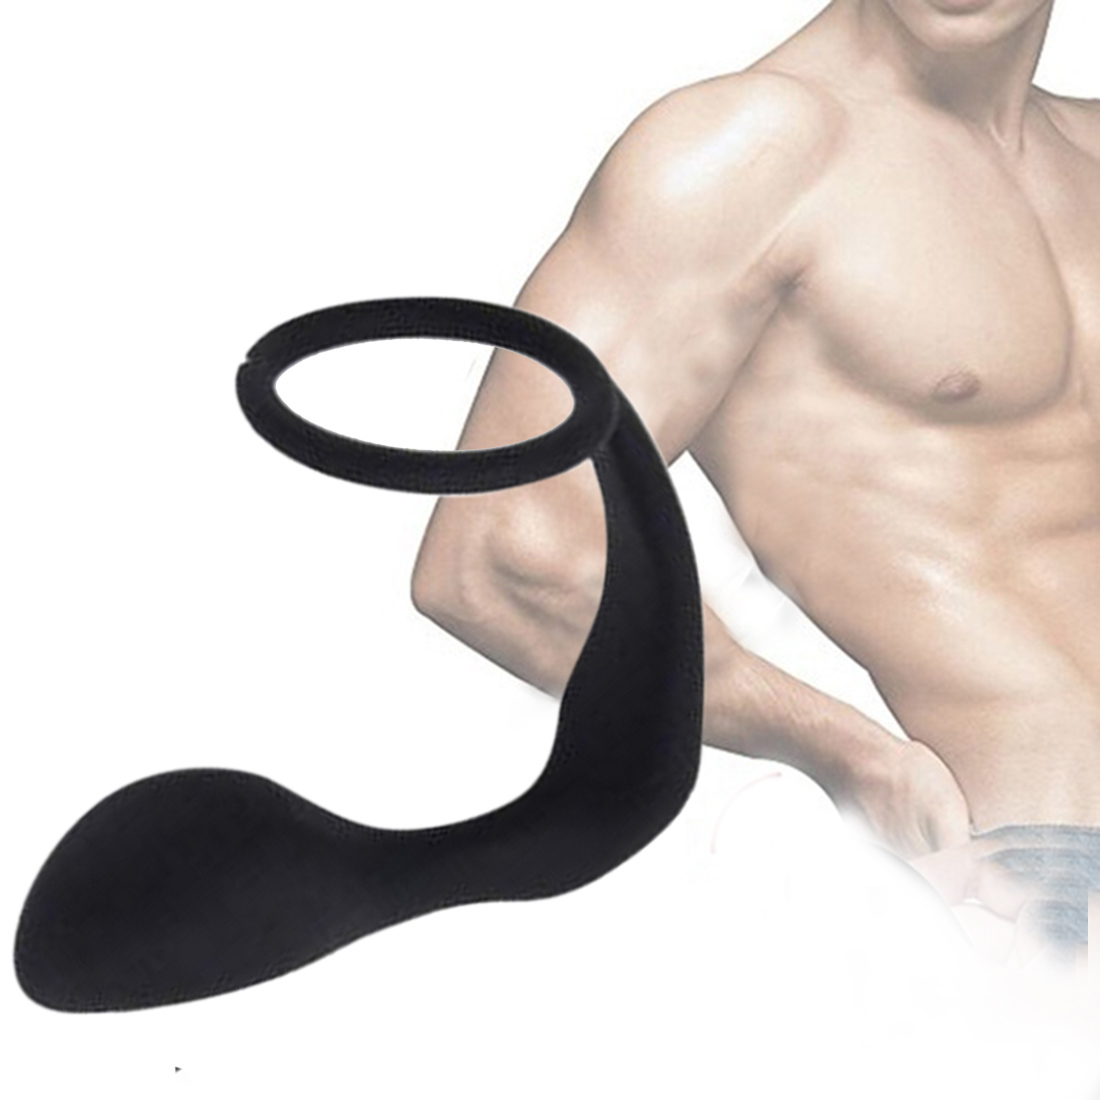 Silicone Anal Plug With Delay Ejaculation <font><b>Penis</b></font> <font><b>Ring</b></font> Prostate Massage Stimulator <font><b>Vibrator</b></font> <font><b>Sex</b></font> <font><b>Toys</b></font> <font><b>For</b></font> Women <font><b>Men</b></font> Masturbator image